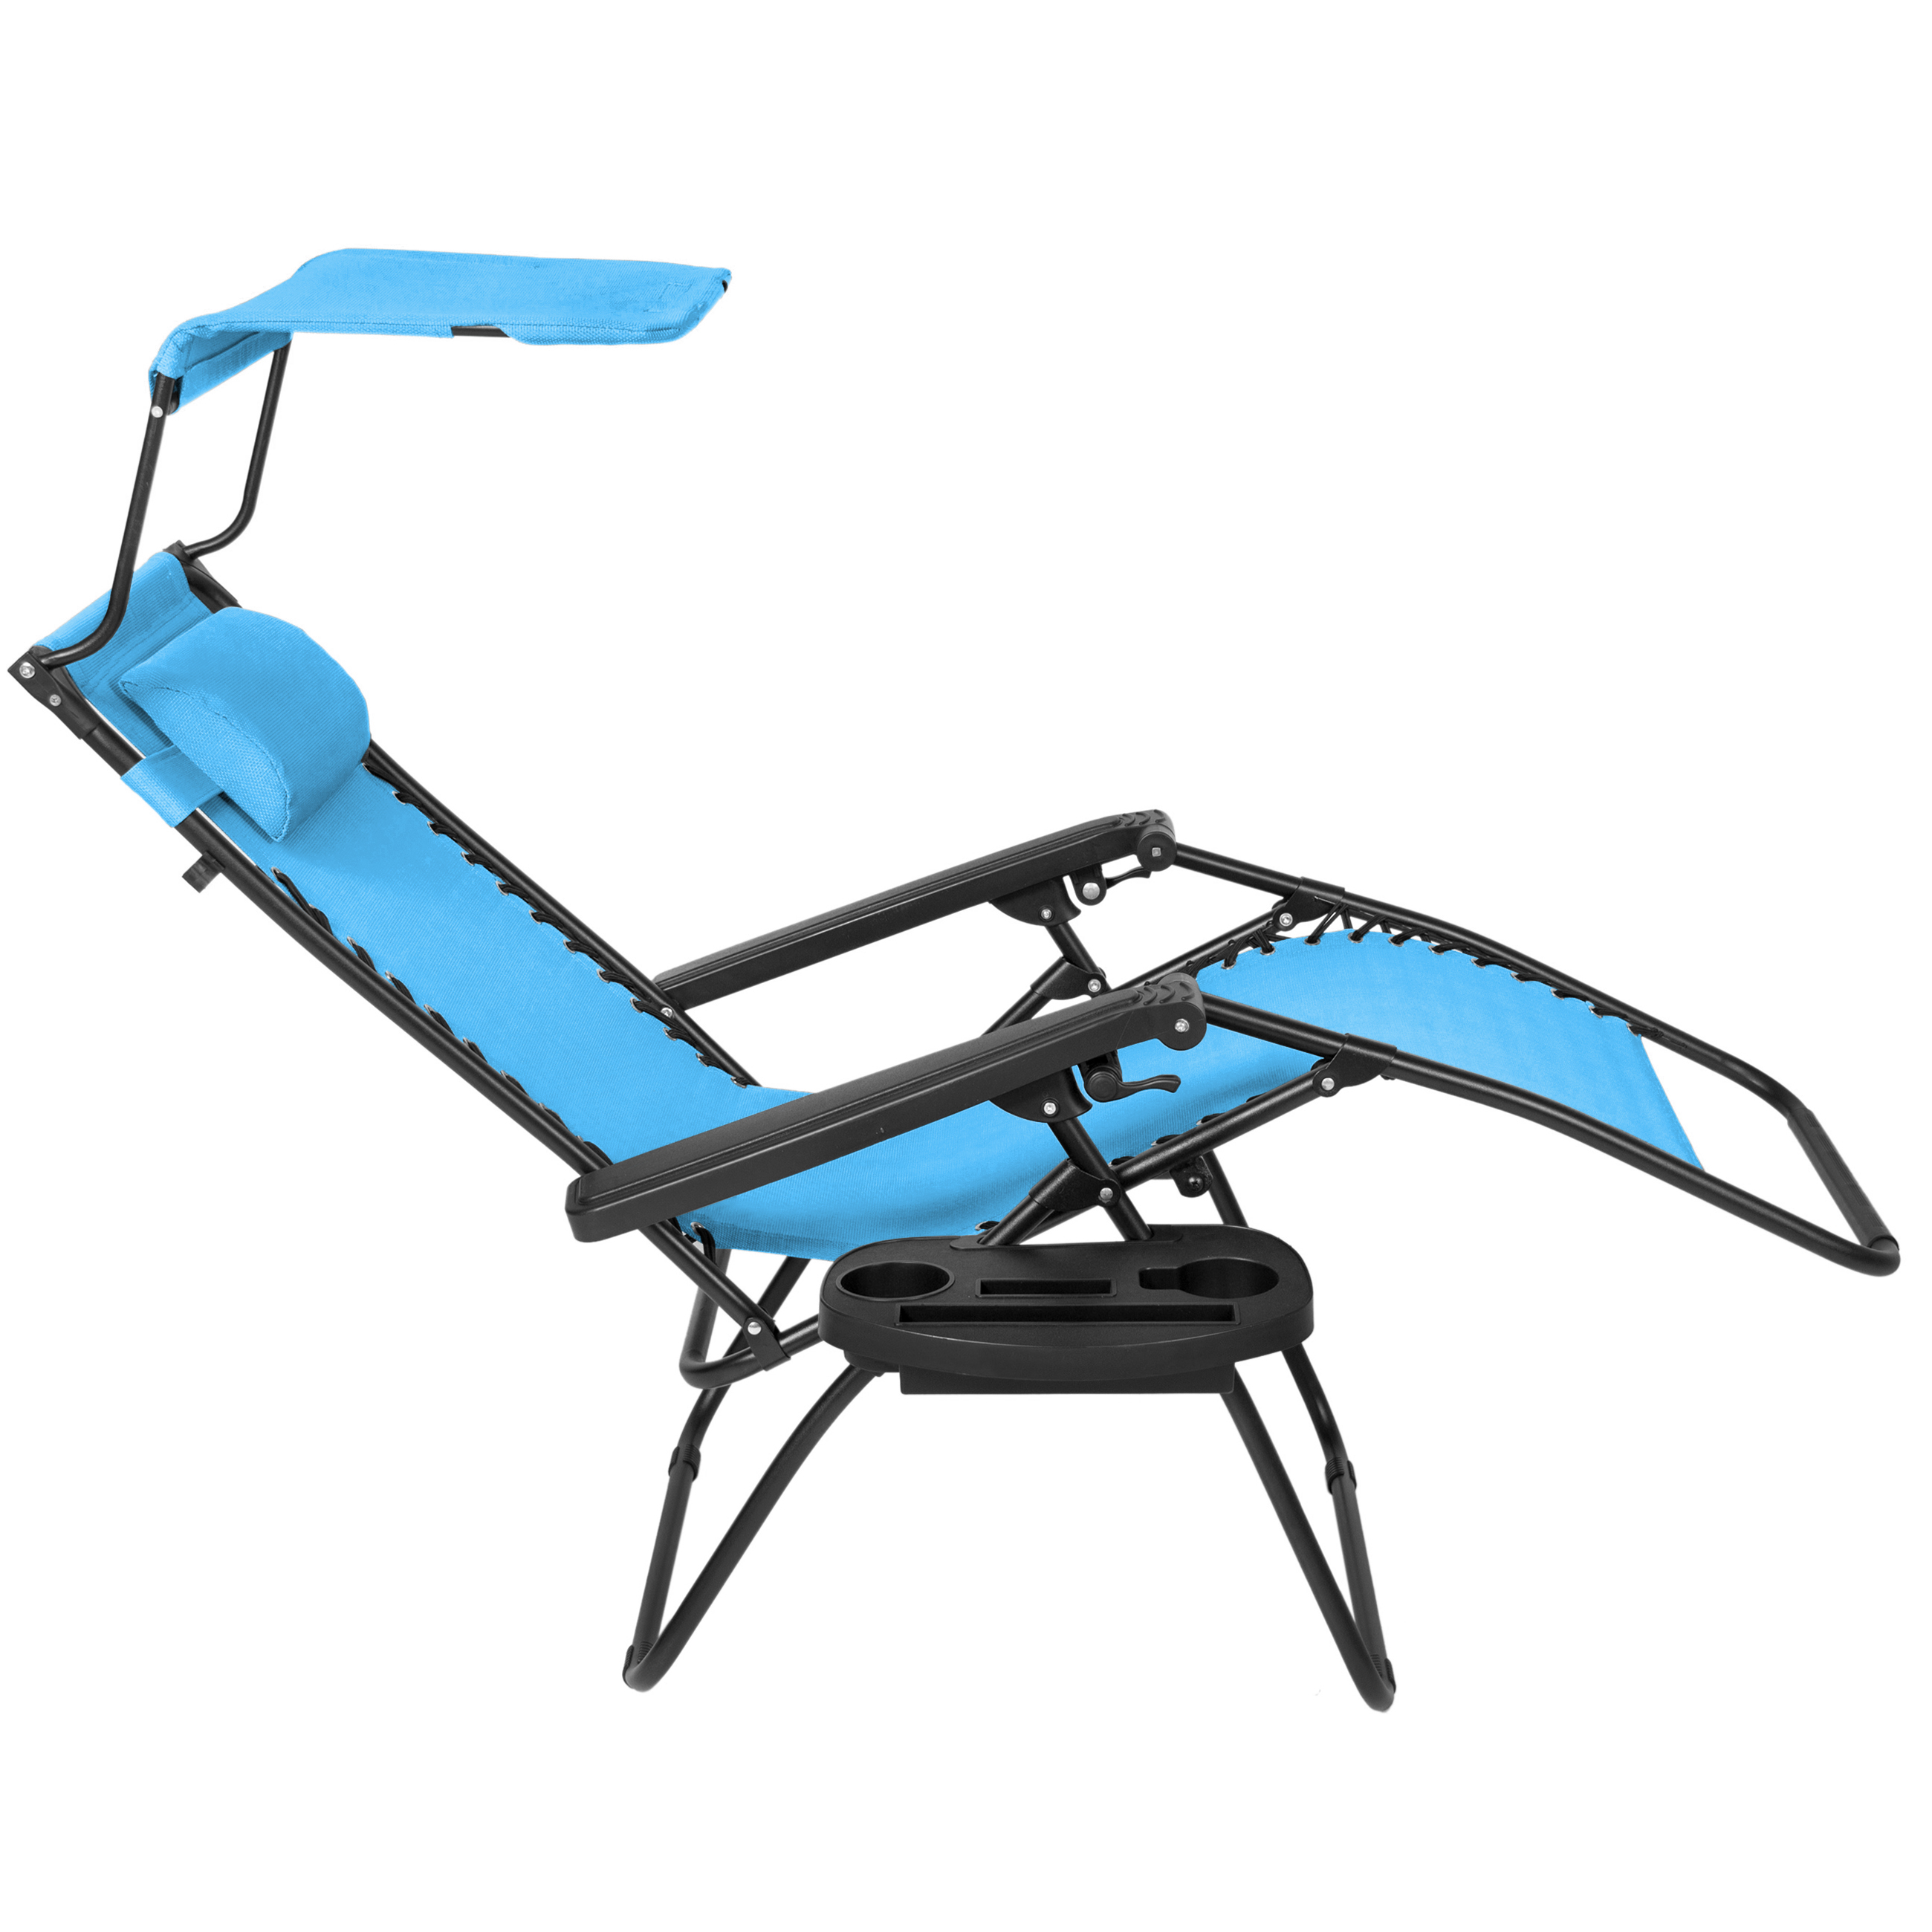 Oversized Zero Gravity Chair With Canopy Folding Zero Gravity Lounge Chair W Canopy And Magazine Cup